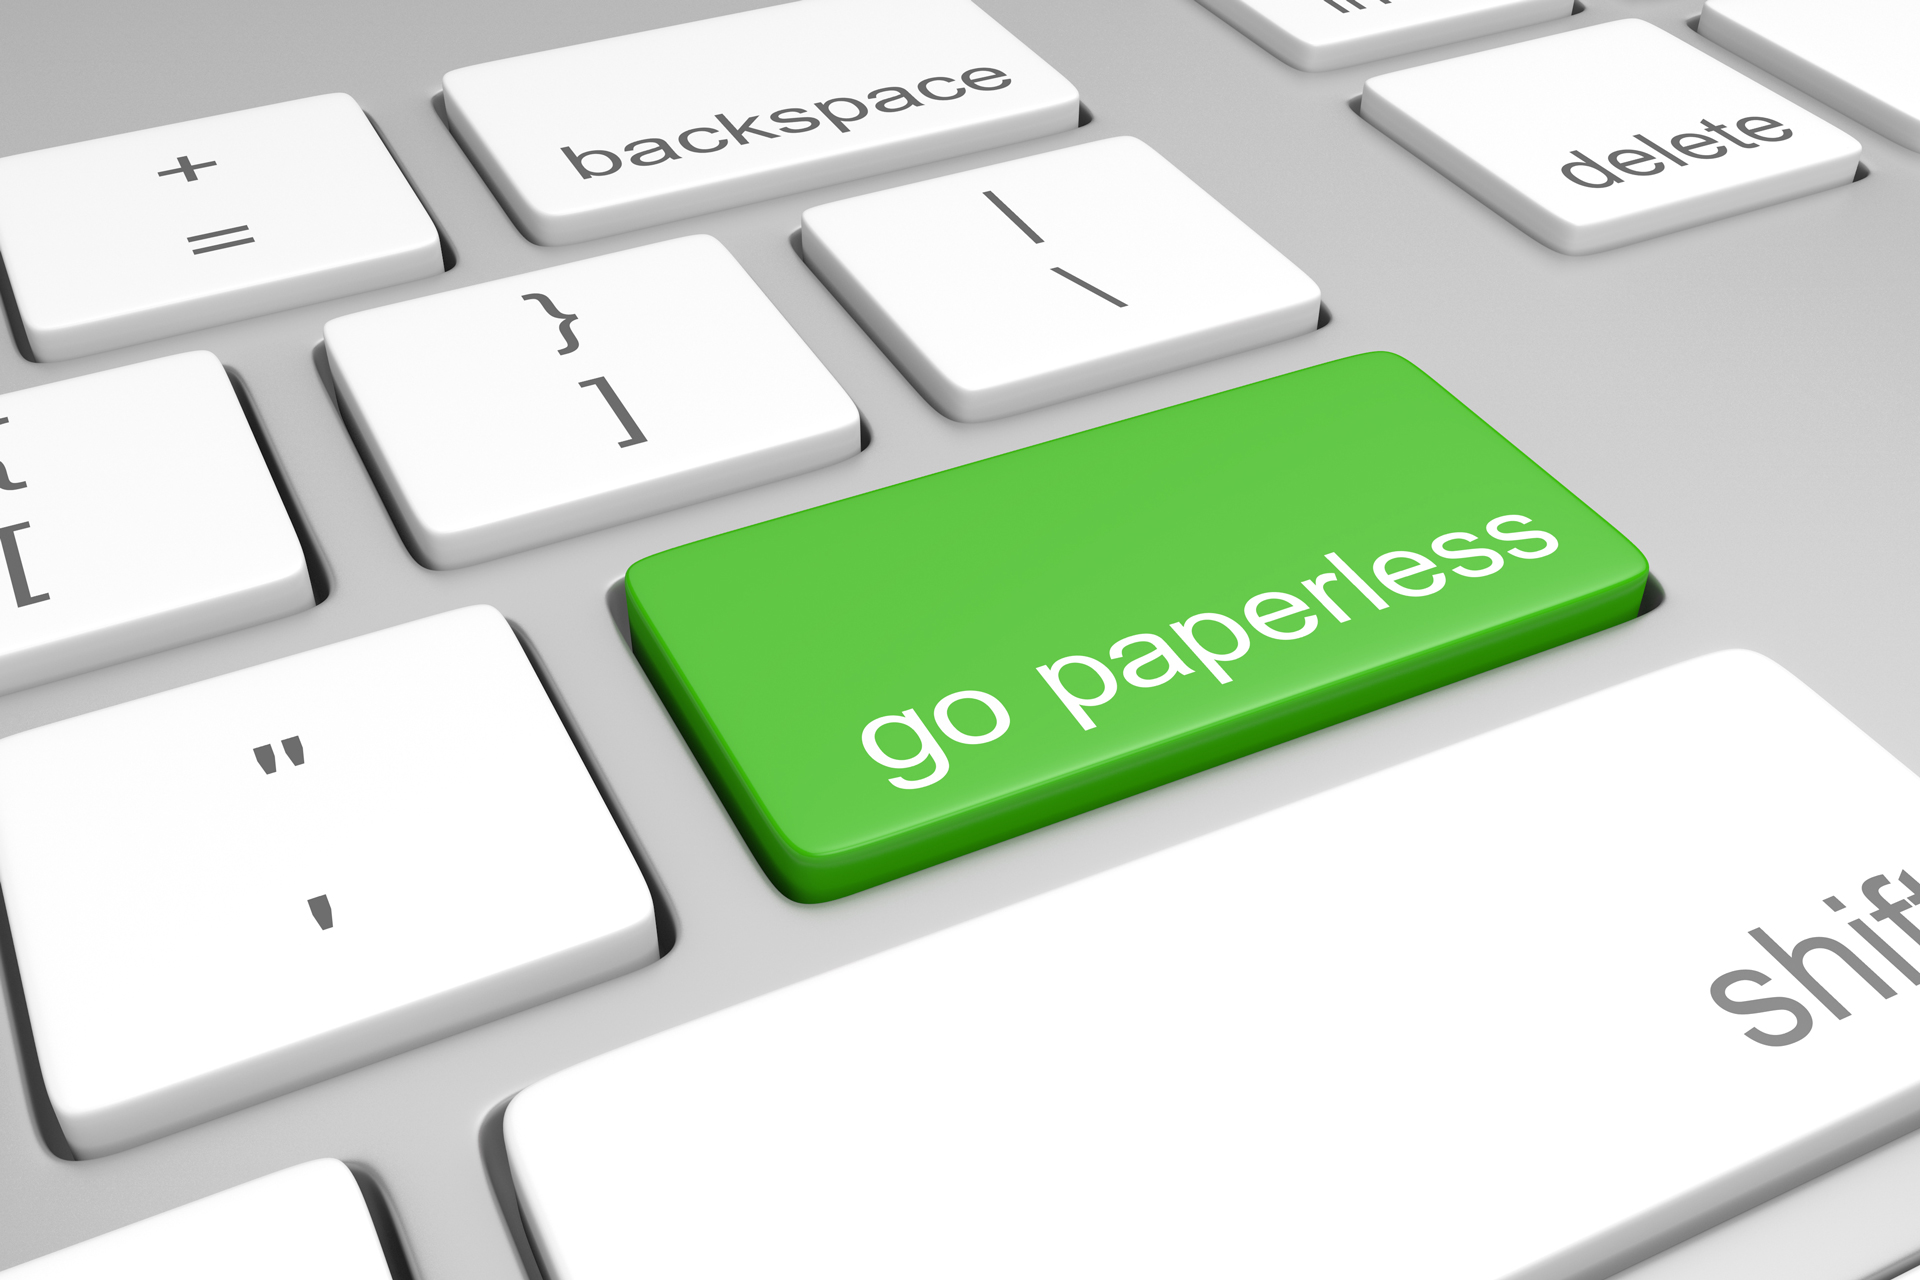 The pros of going paperless in the Pandemic